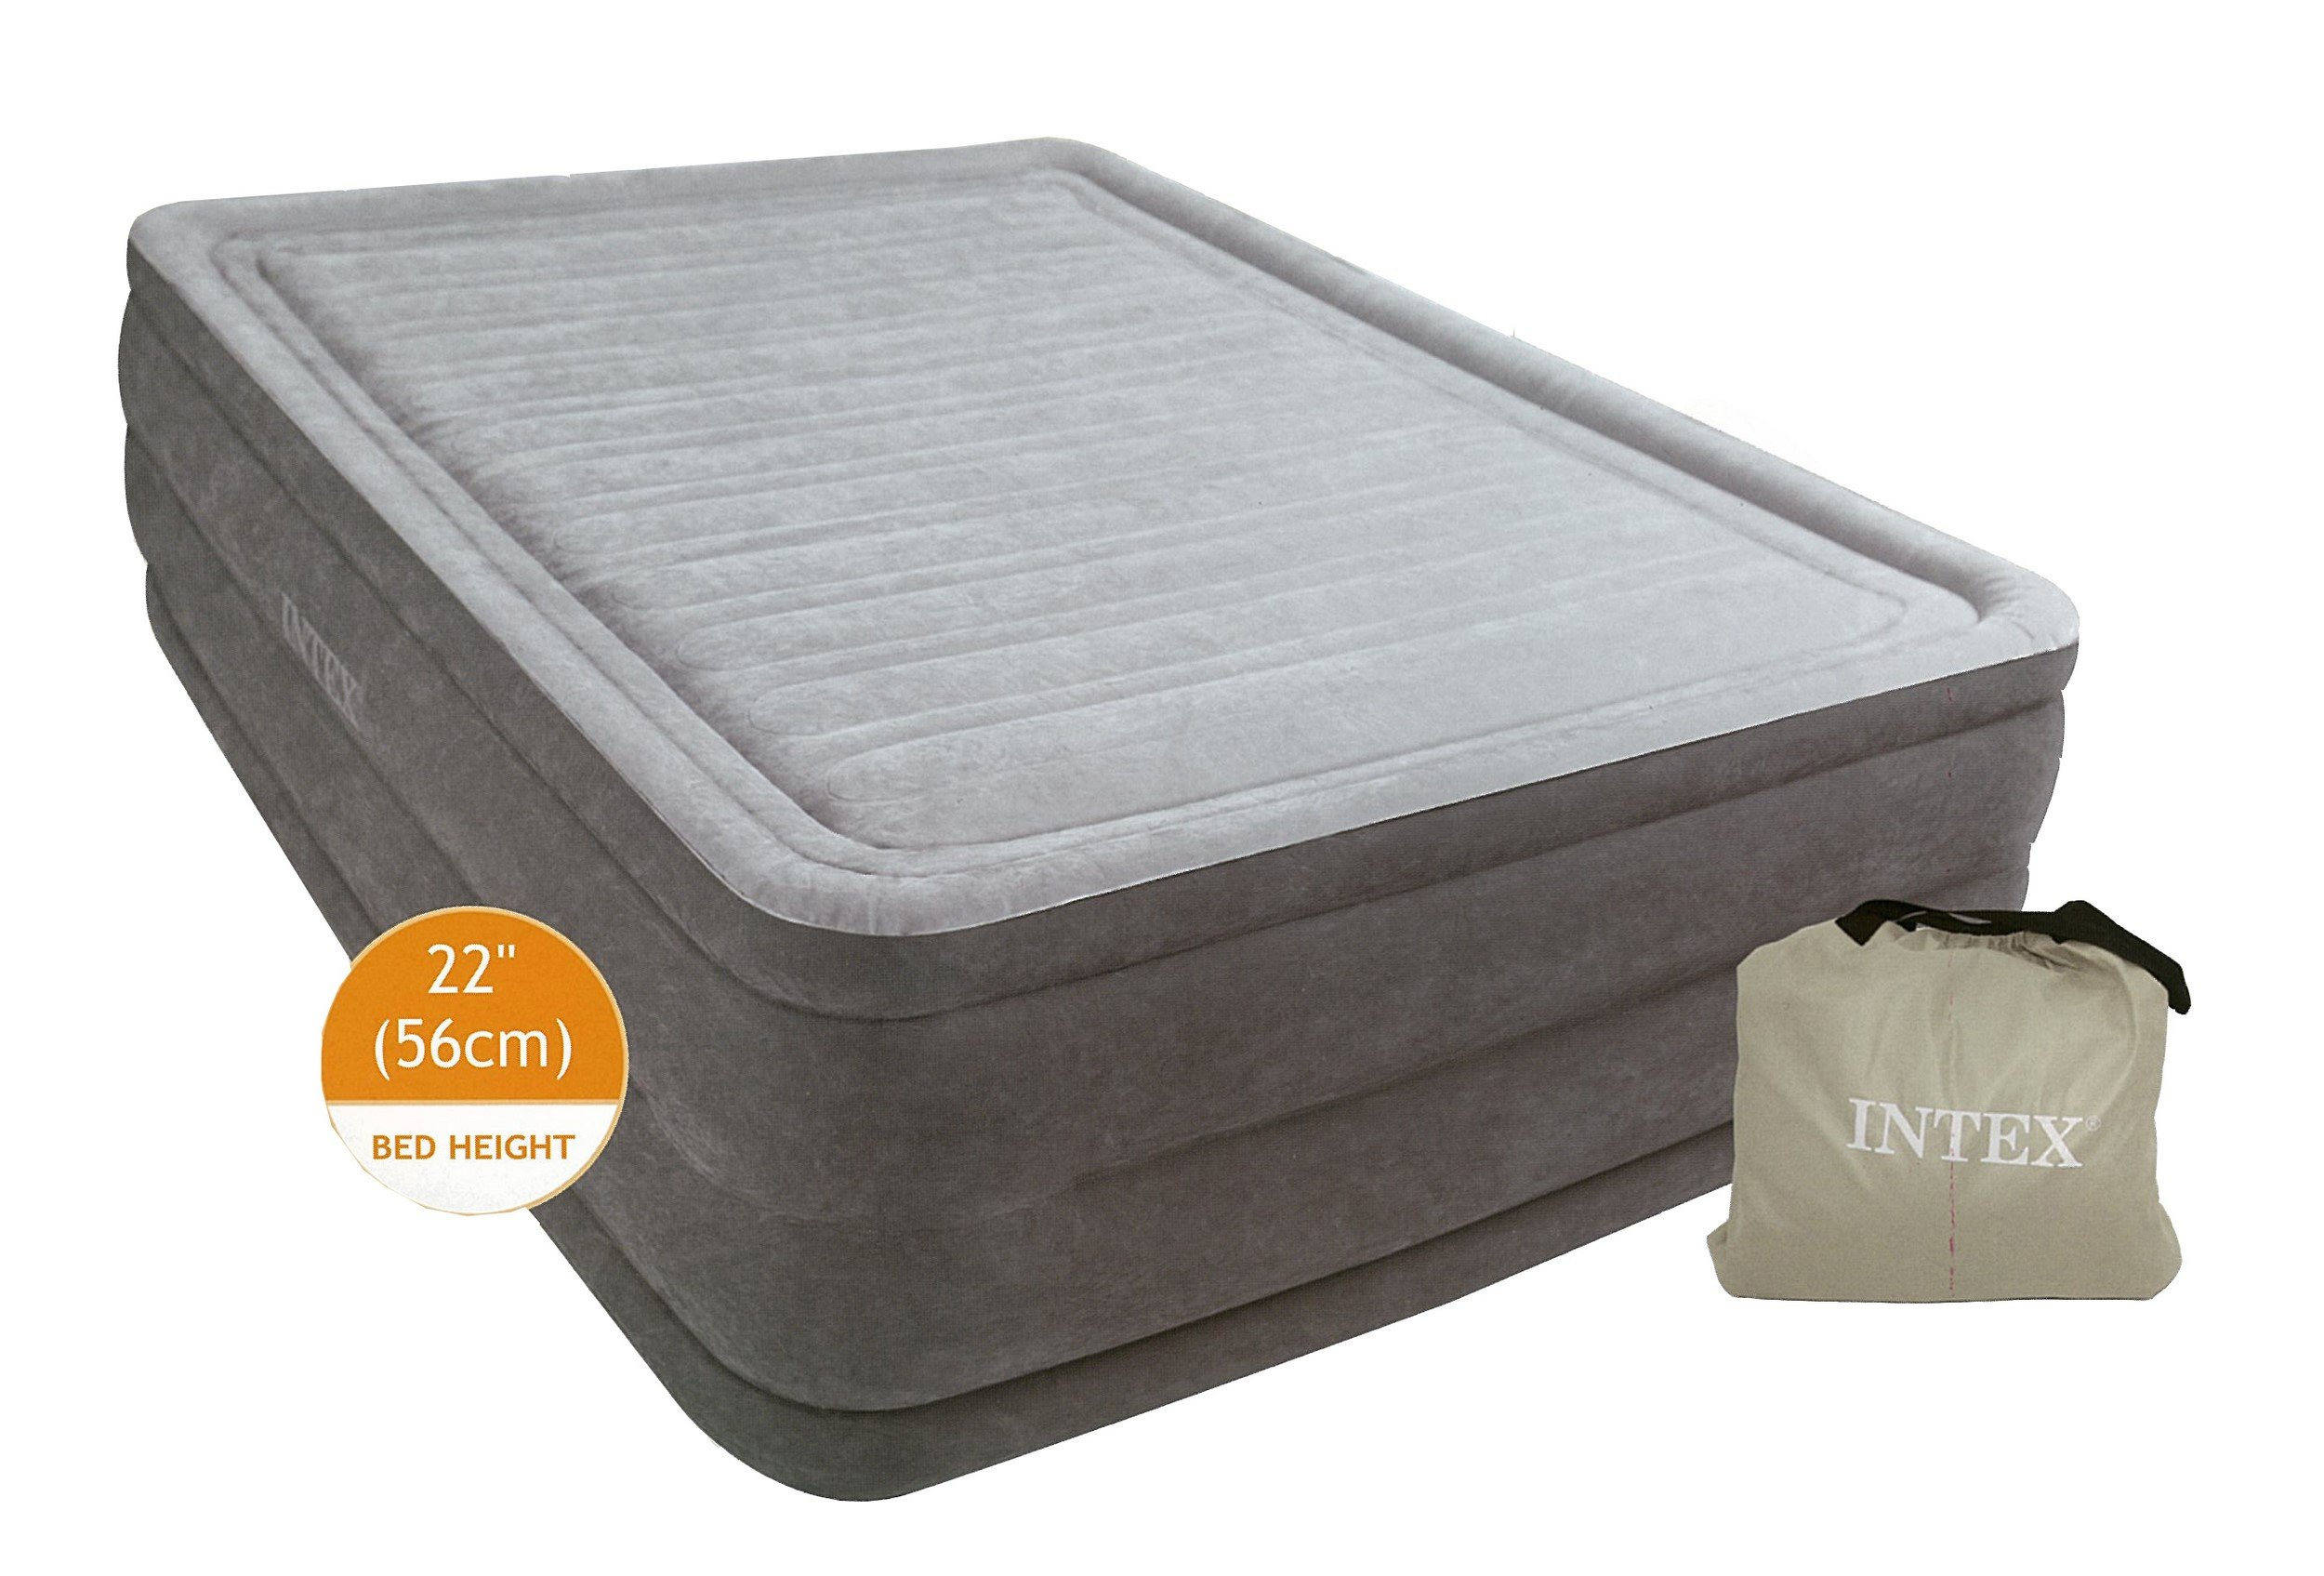 Intex Comfort Plush Elevated Dura-Beam Airbed with Built-in Electric Pump, Bed Height 18'', Twin by Intex (Image #13)